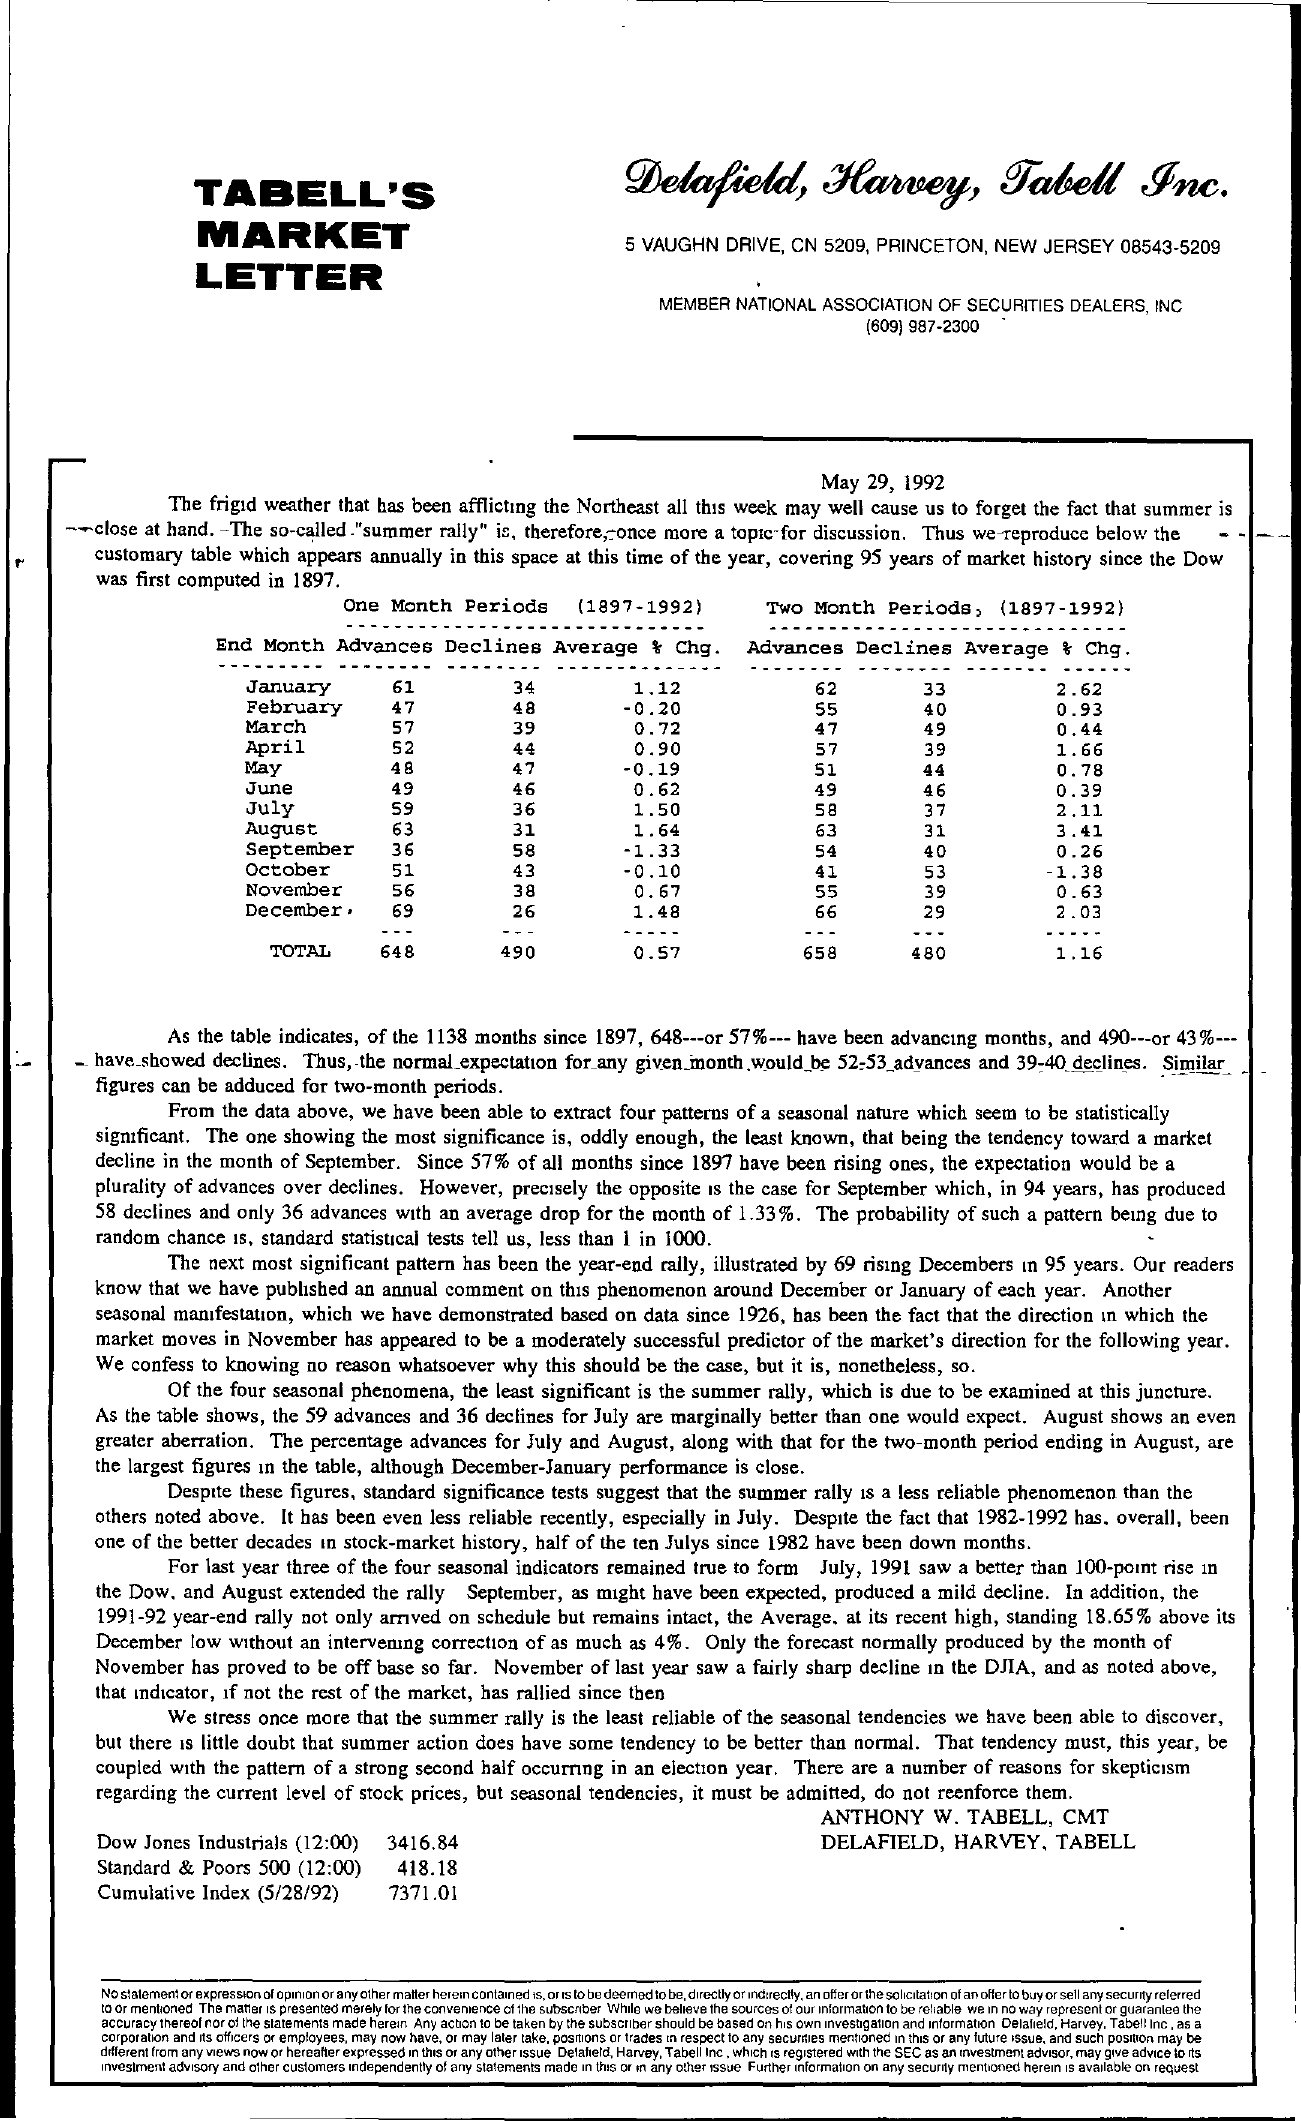 Tabell's Market Letter - May 29, 1992